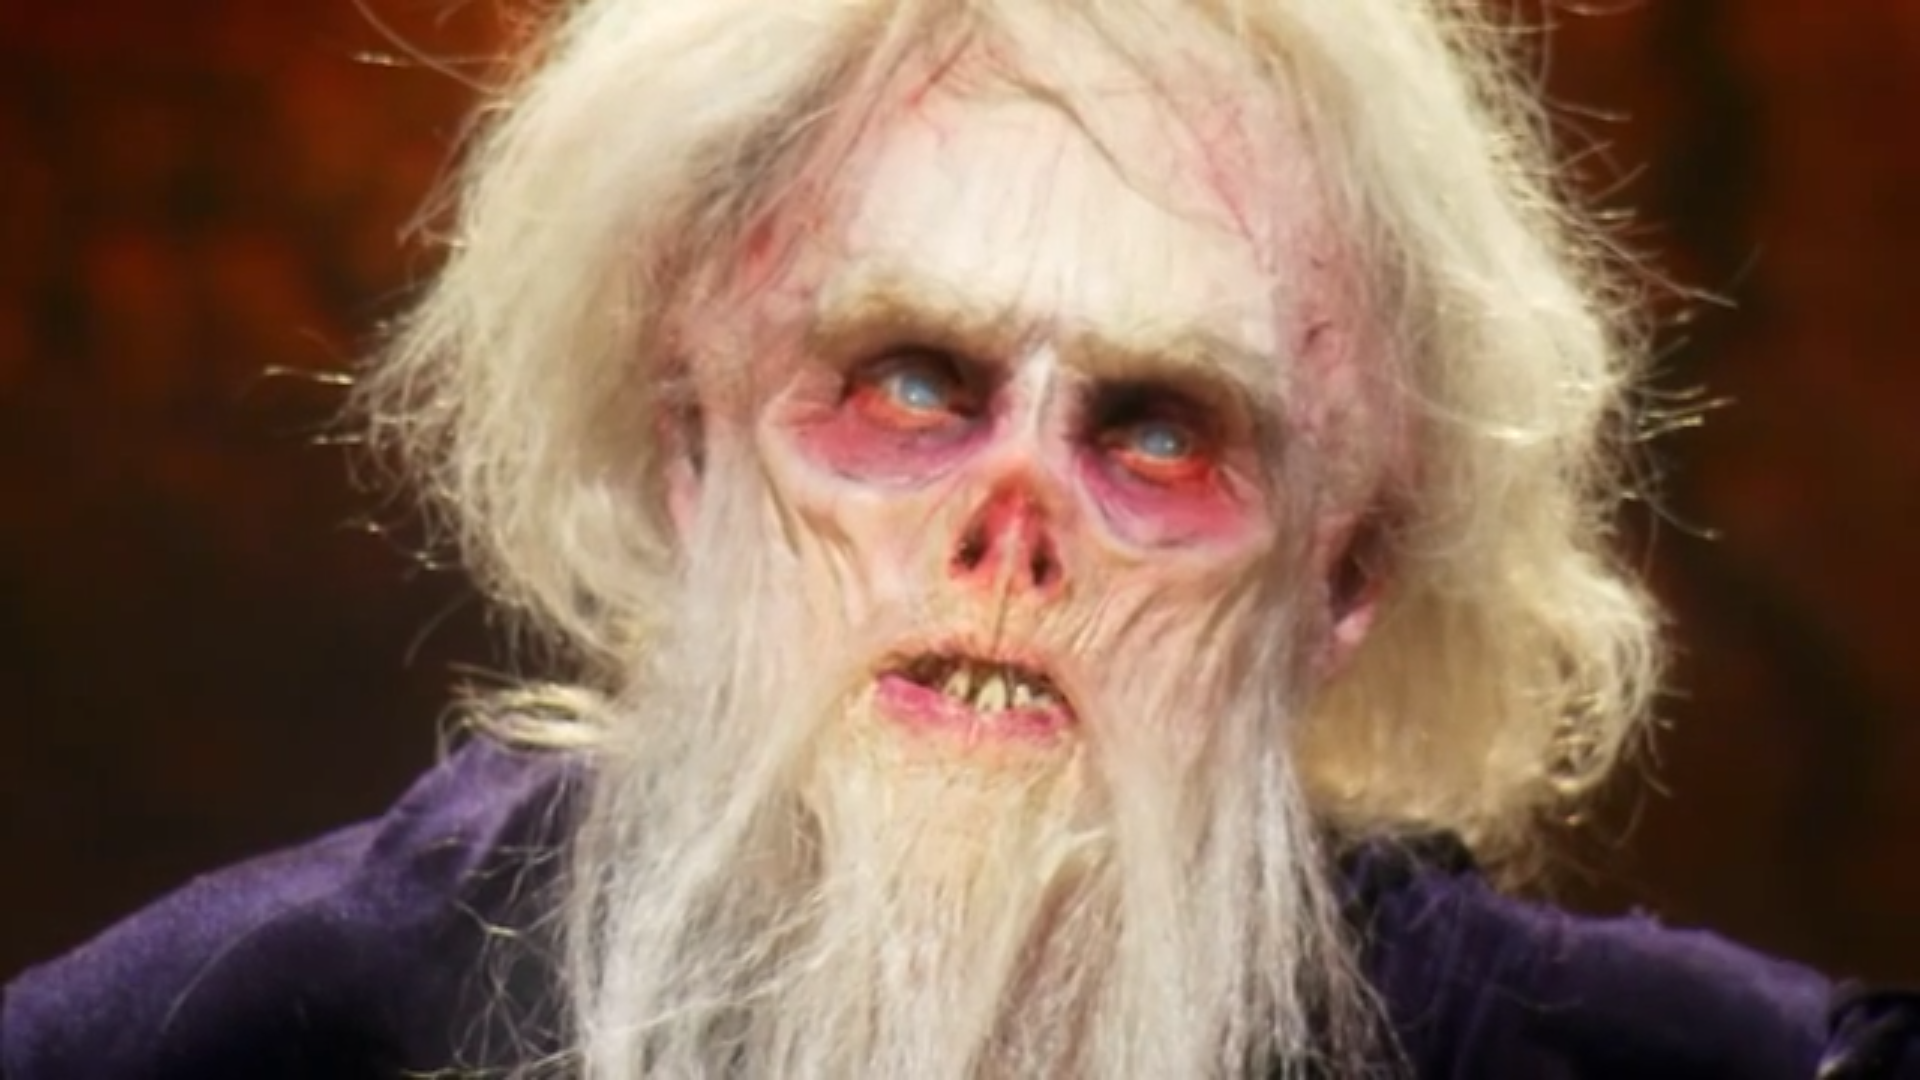 A close look at Kevon Ward's finished makeup